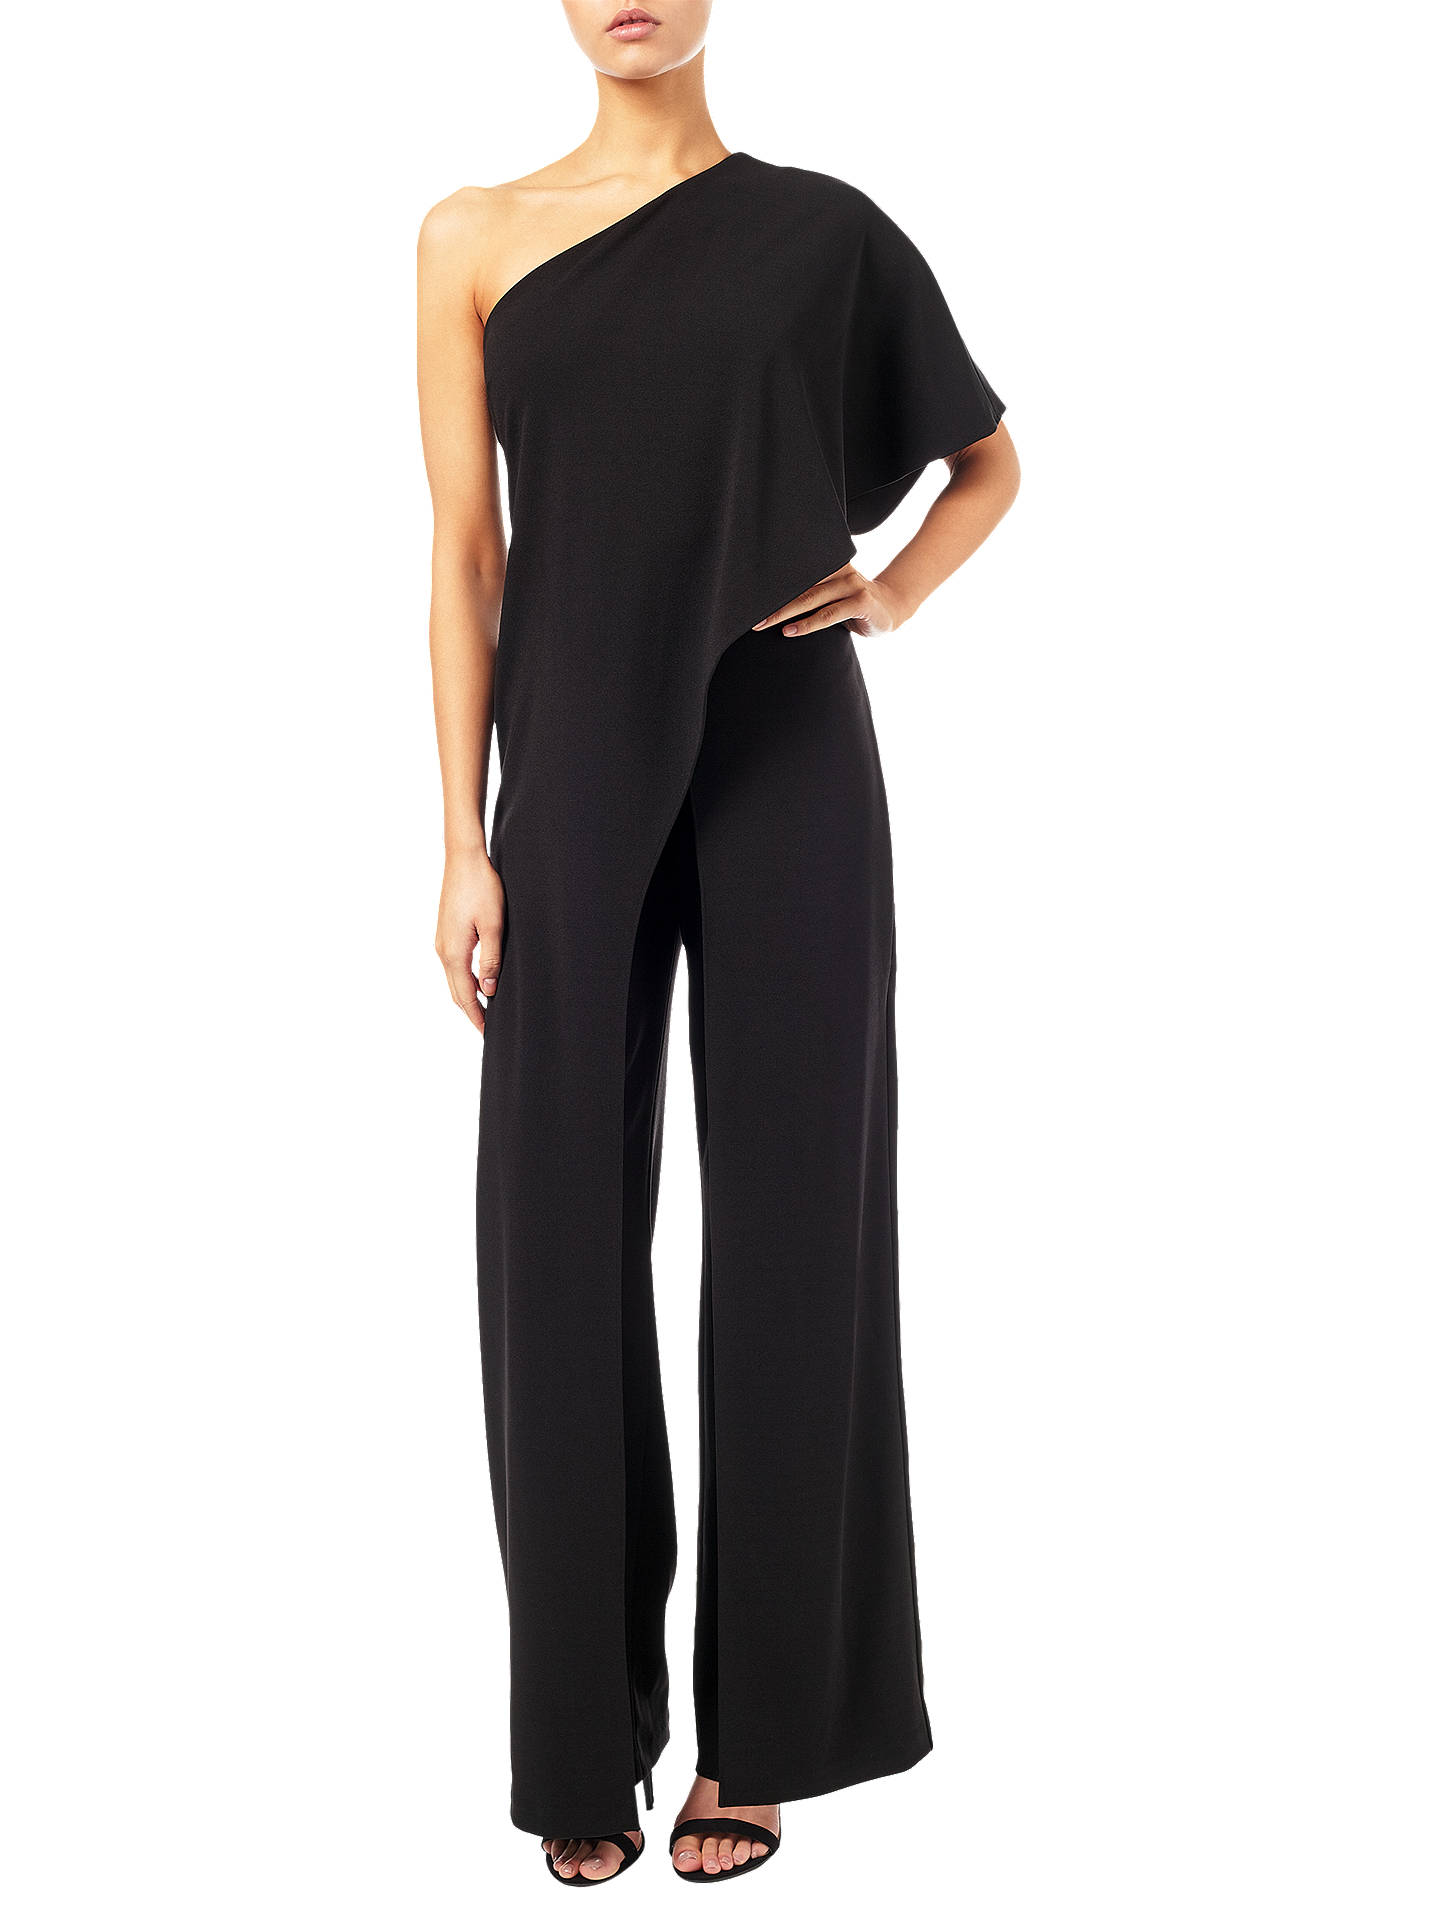 b4831c056b9 Adrianna Papell One Shoulder Jumpsuit at John Lewis   Partners